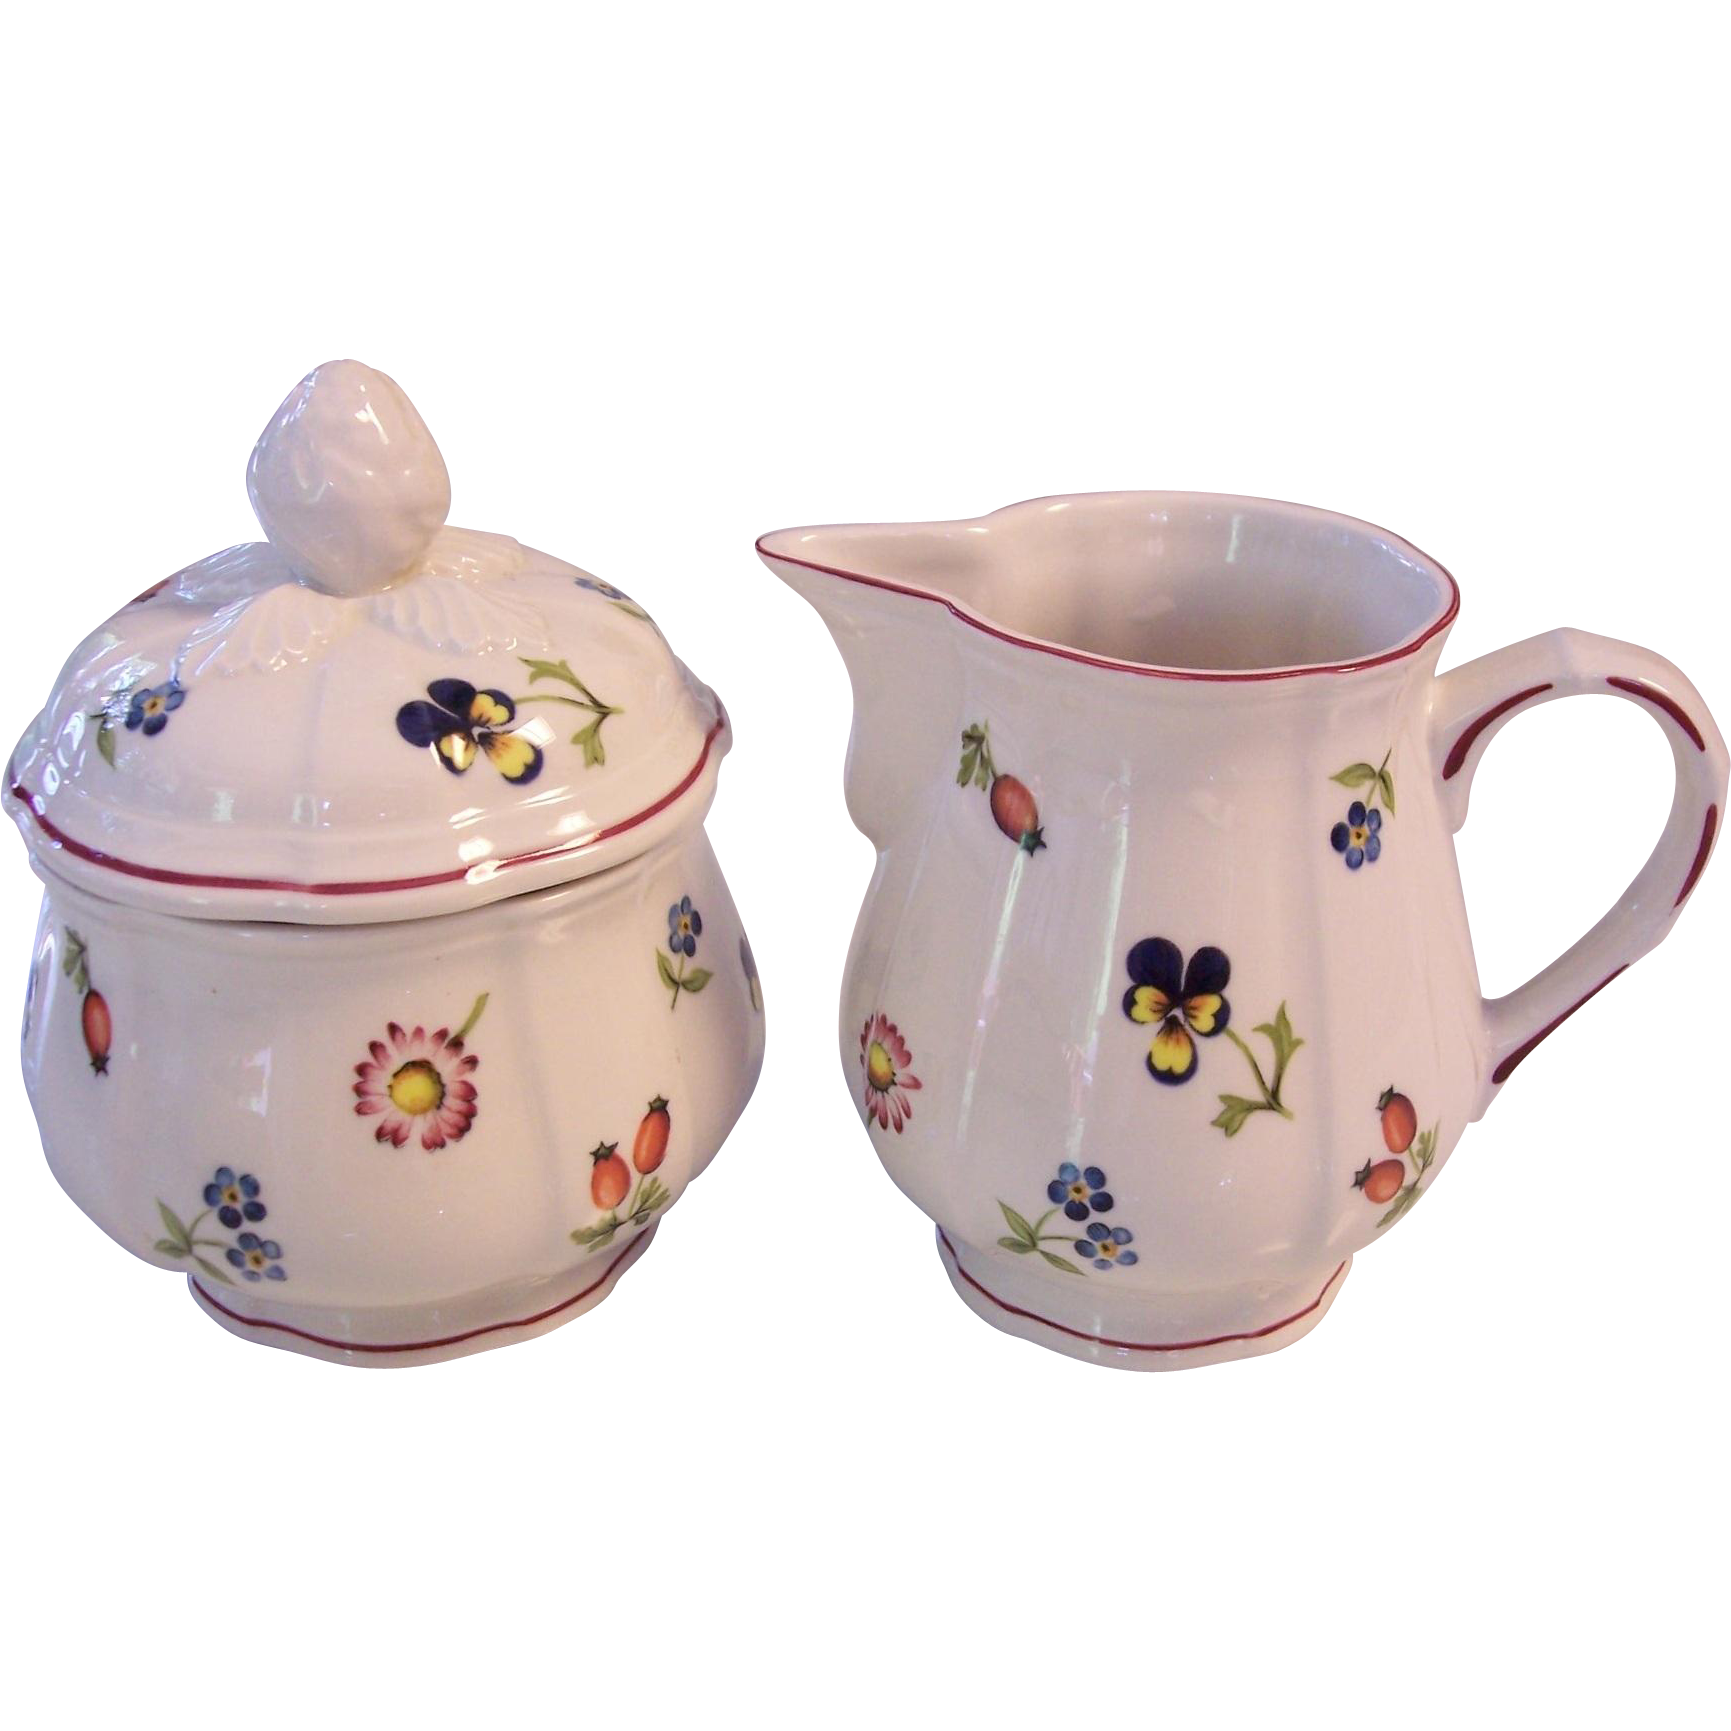 Villeroy boch petite fleur sugar and creamer set v b from modseller on ruby lane - Villeroy and bosh ...